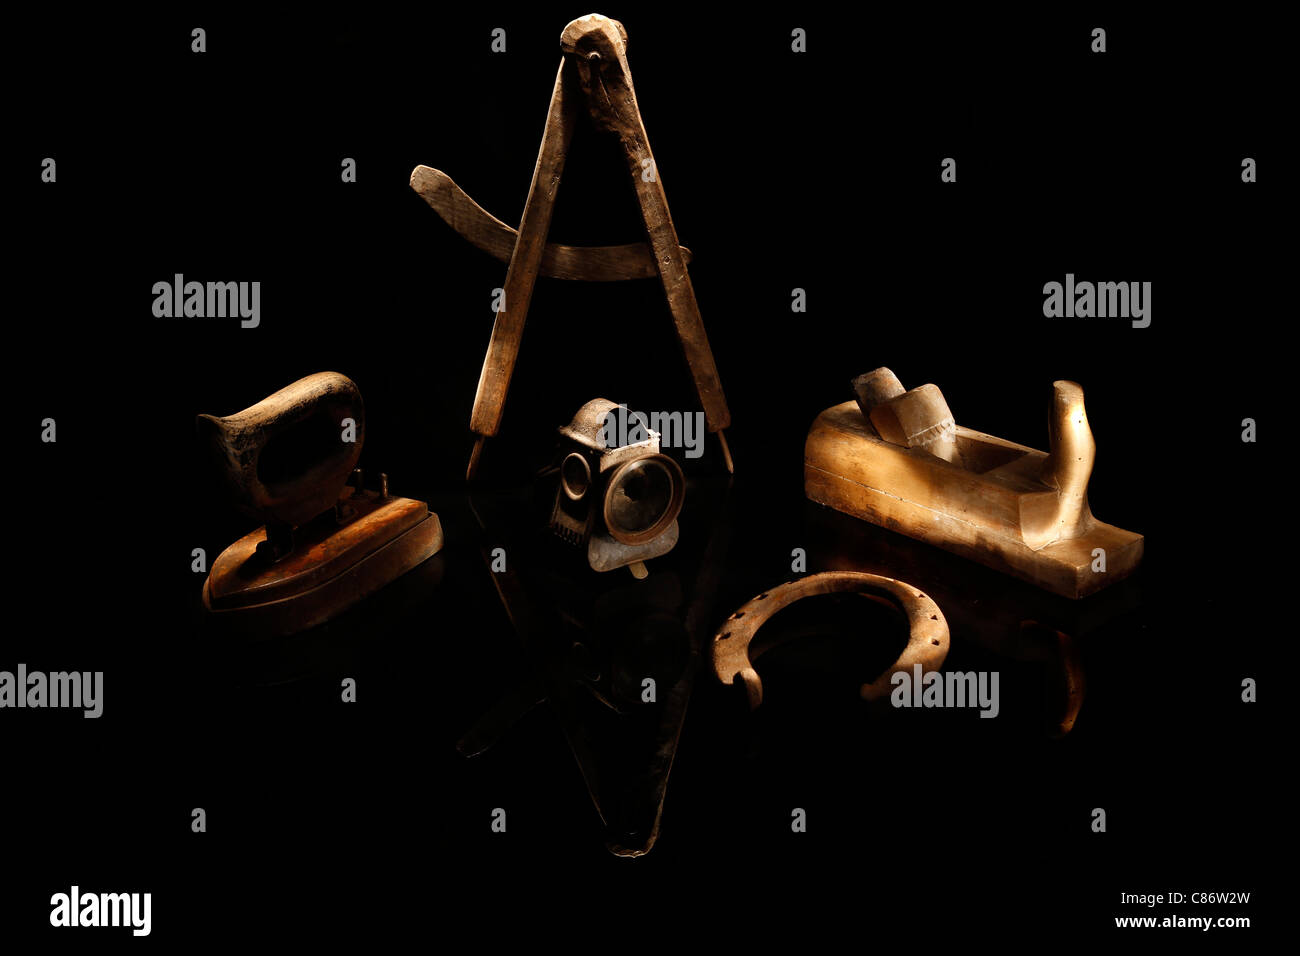 Various old handcraft articles - Stock Image